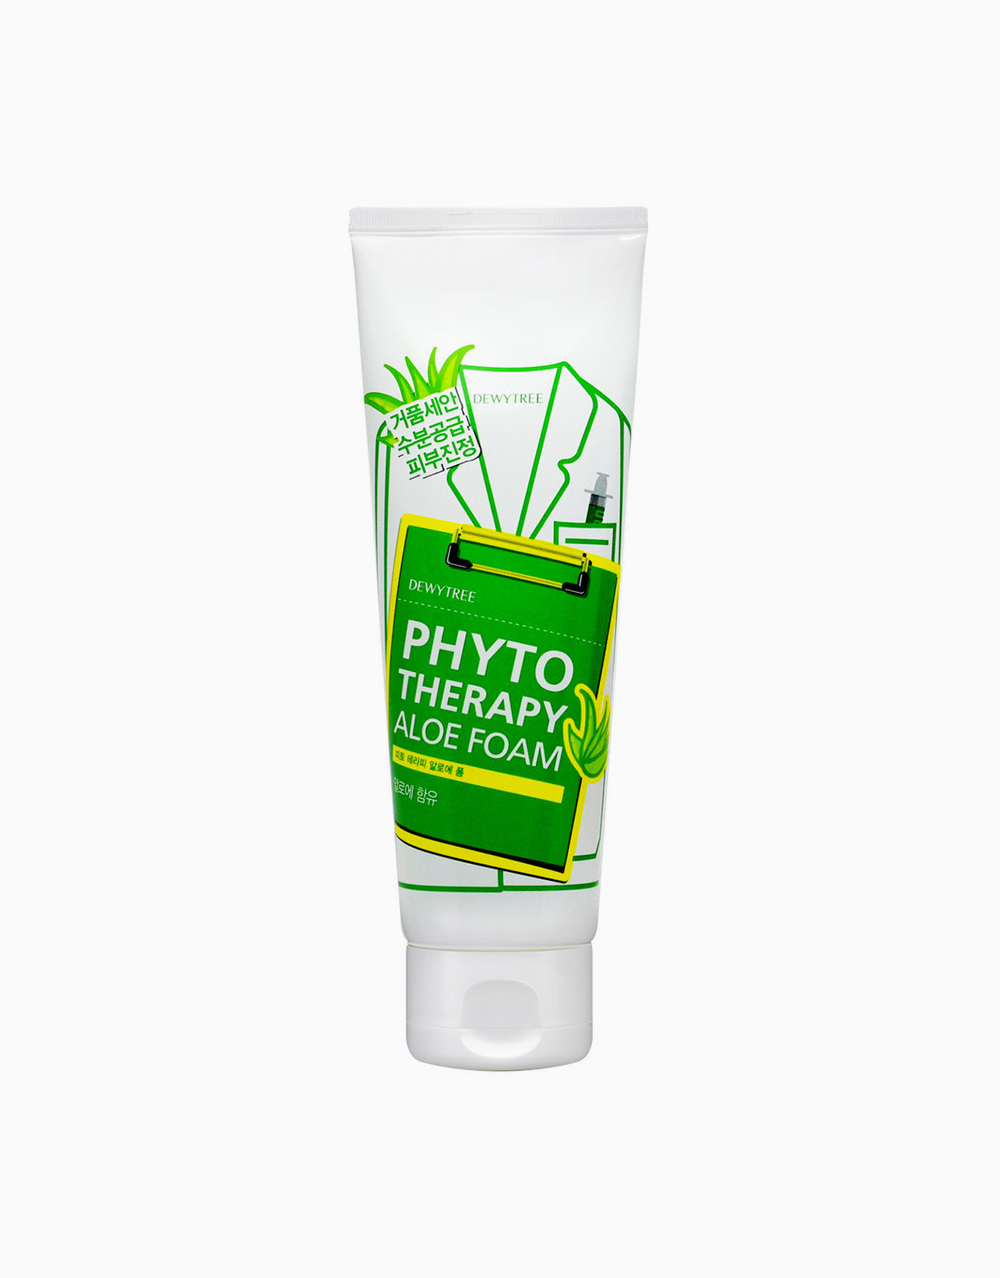 Phyto Therapy Aloe Foam by Dewytree